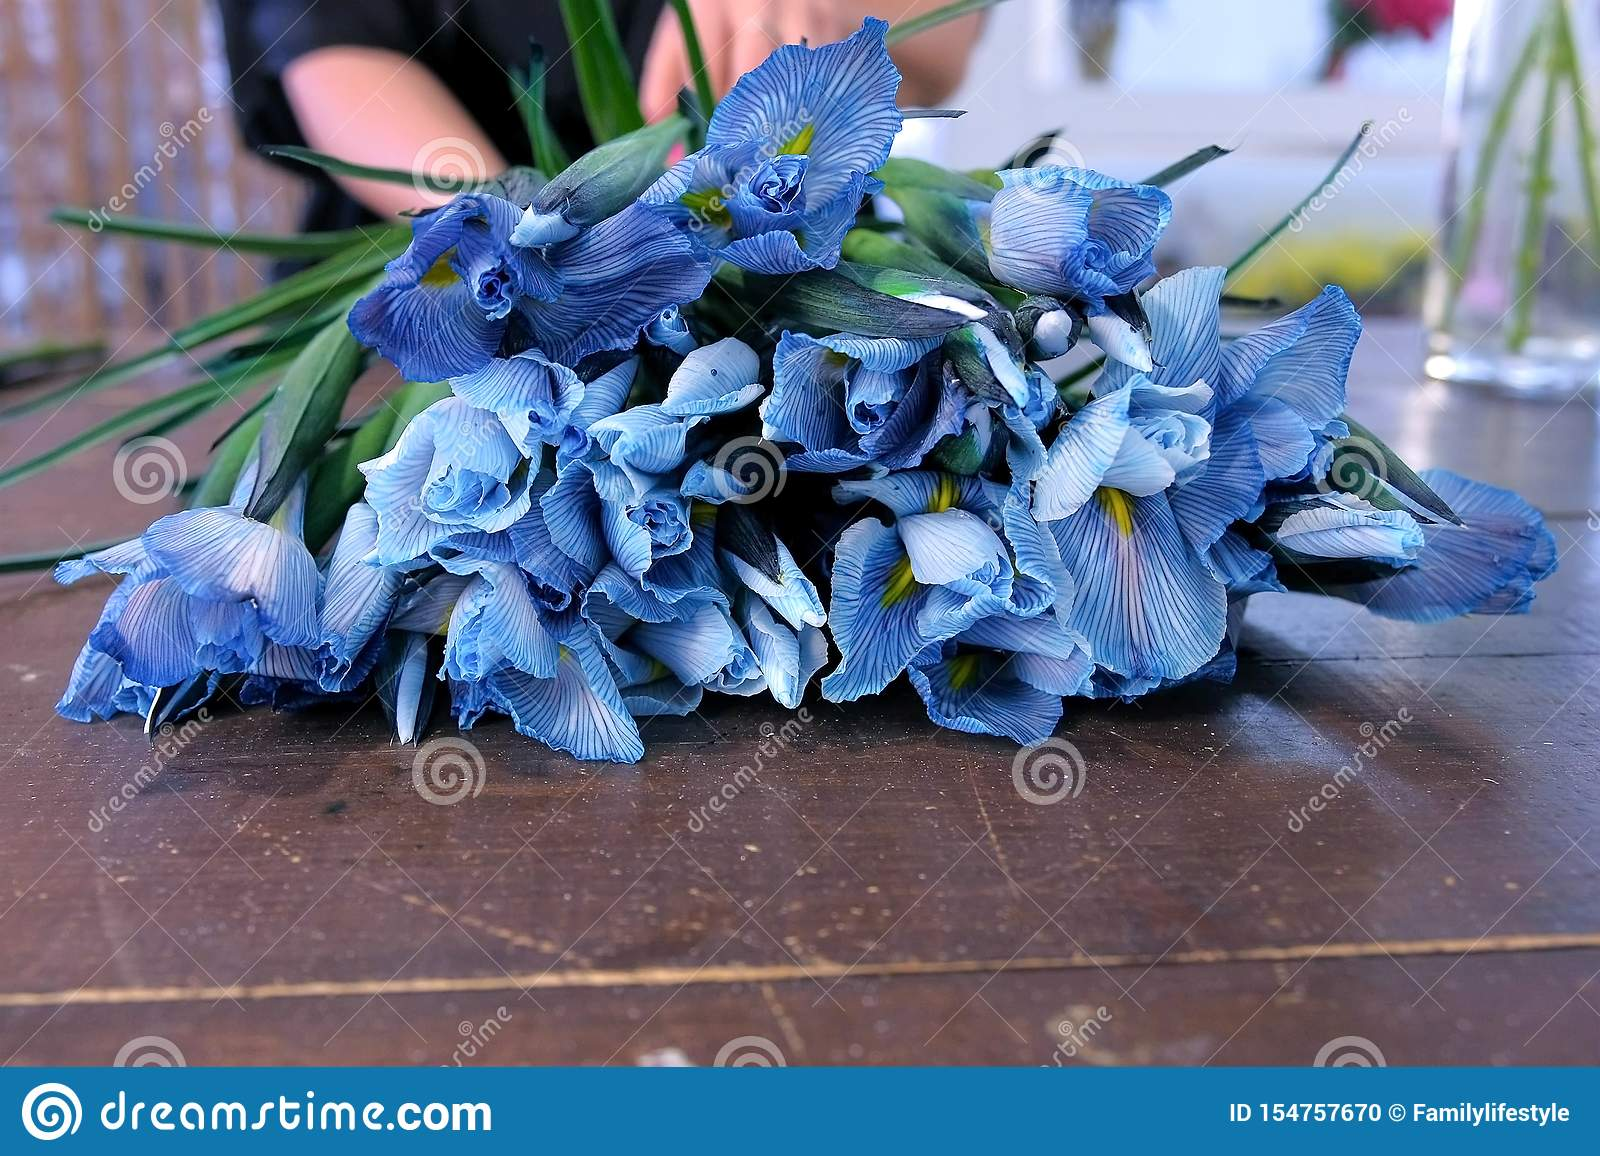 Florist Woman Creates Bouquet From Blue Iris Flowers On Table For Sale In Shop Stock Photo Image Of Hands Business 154757670